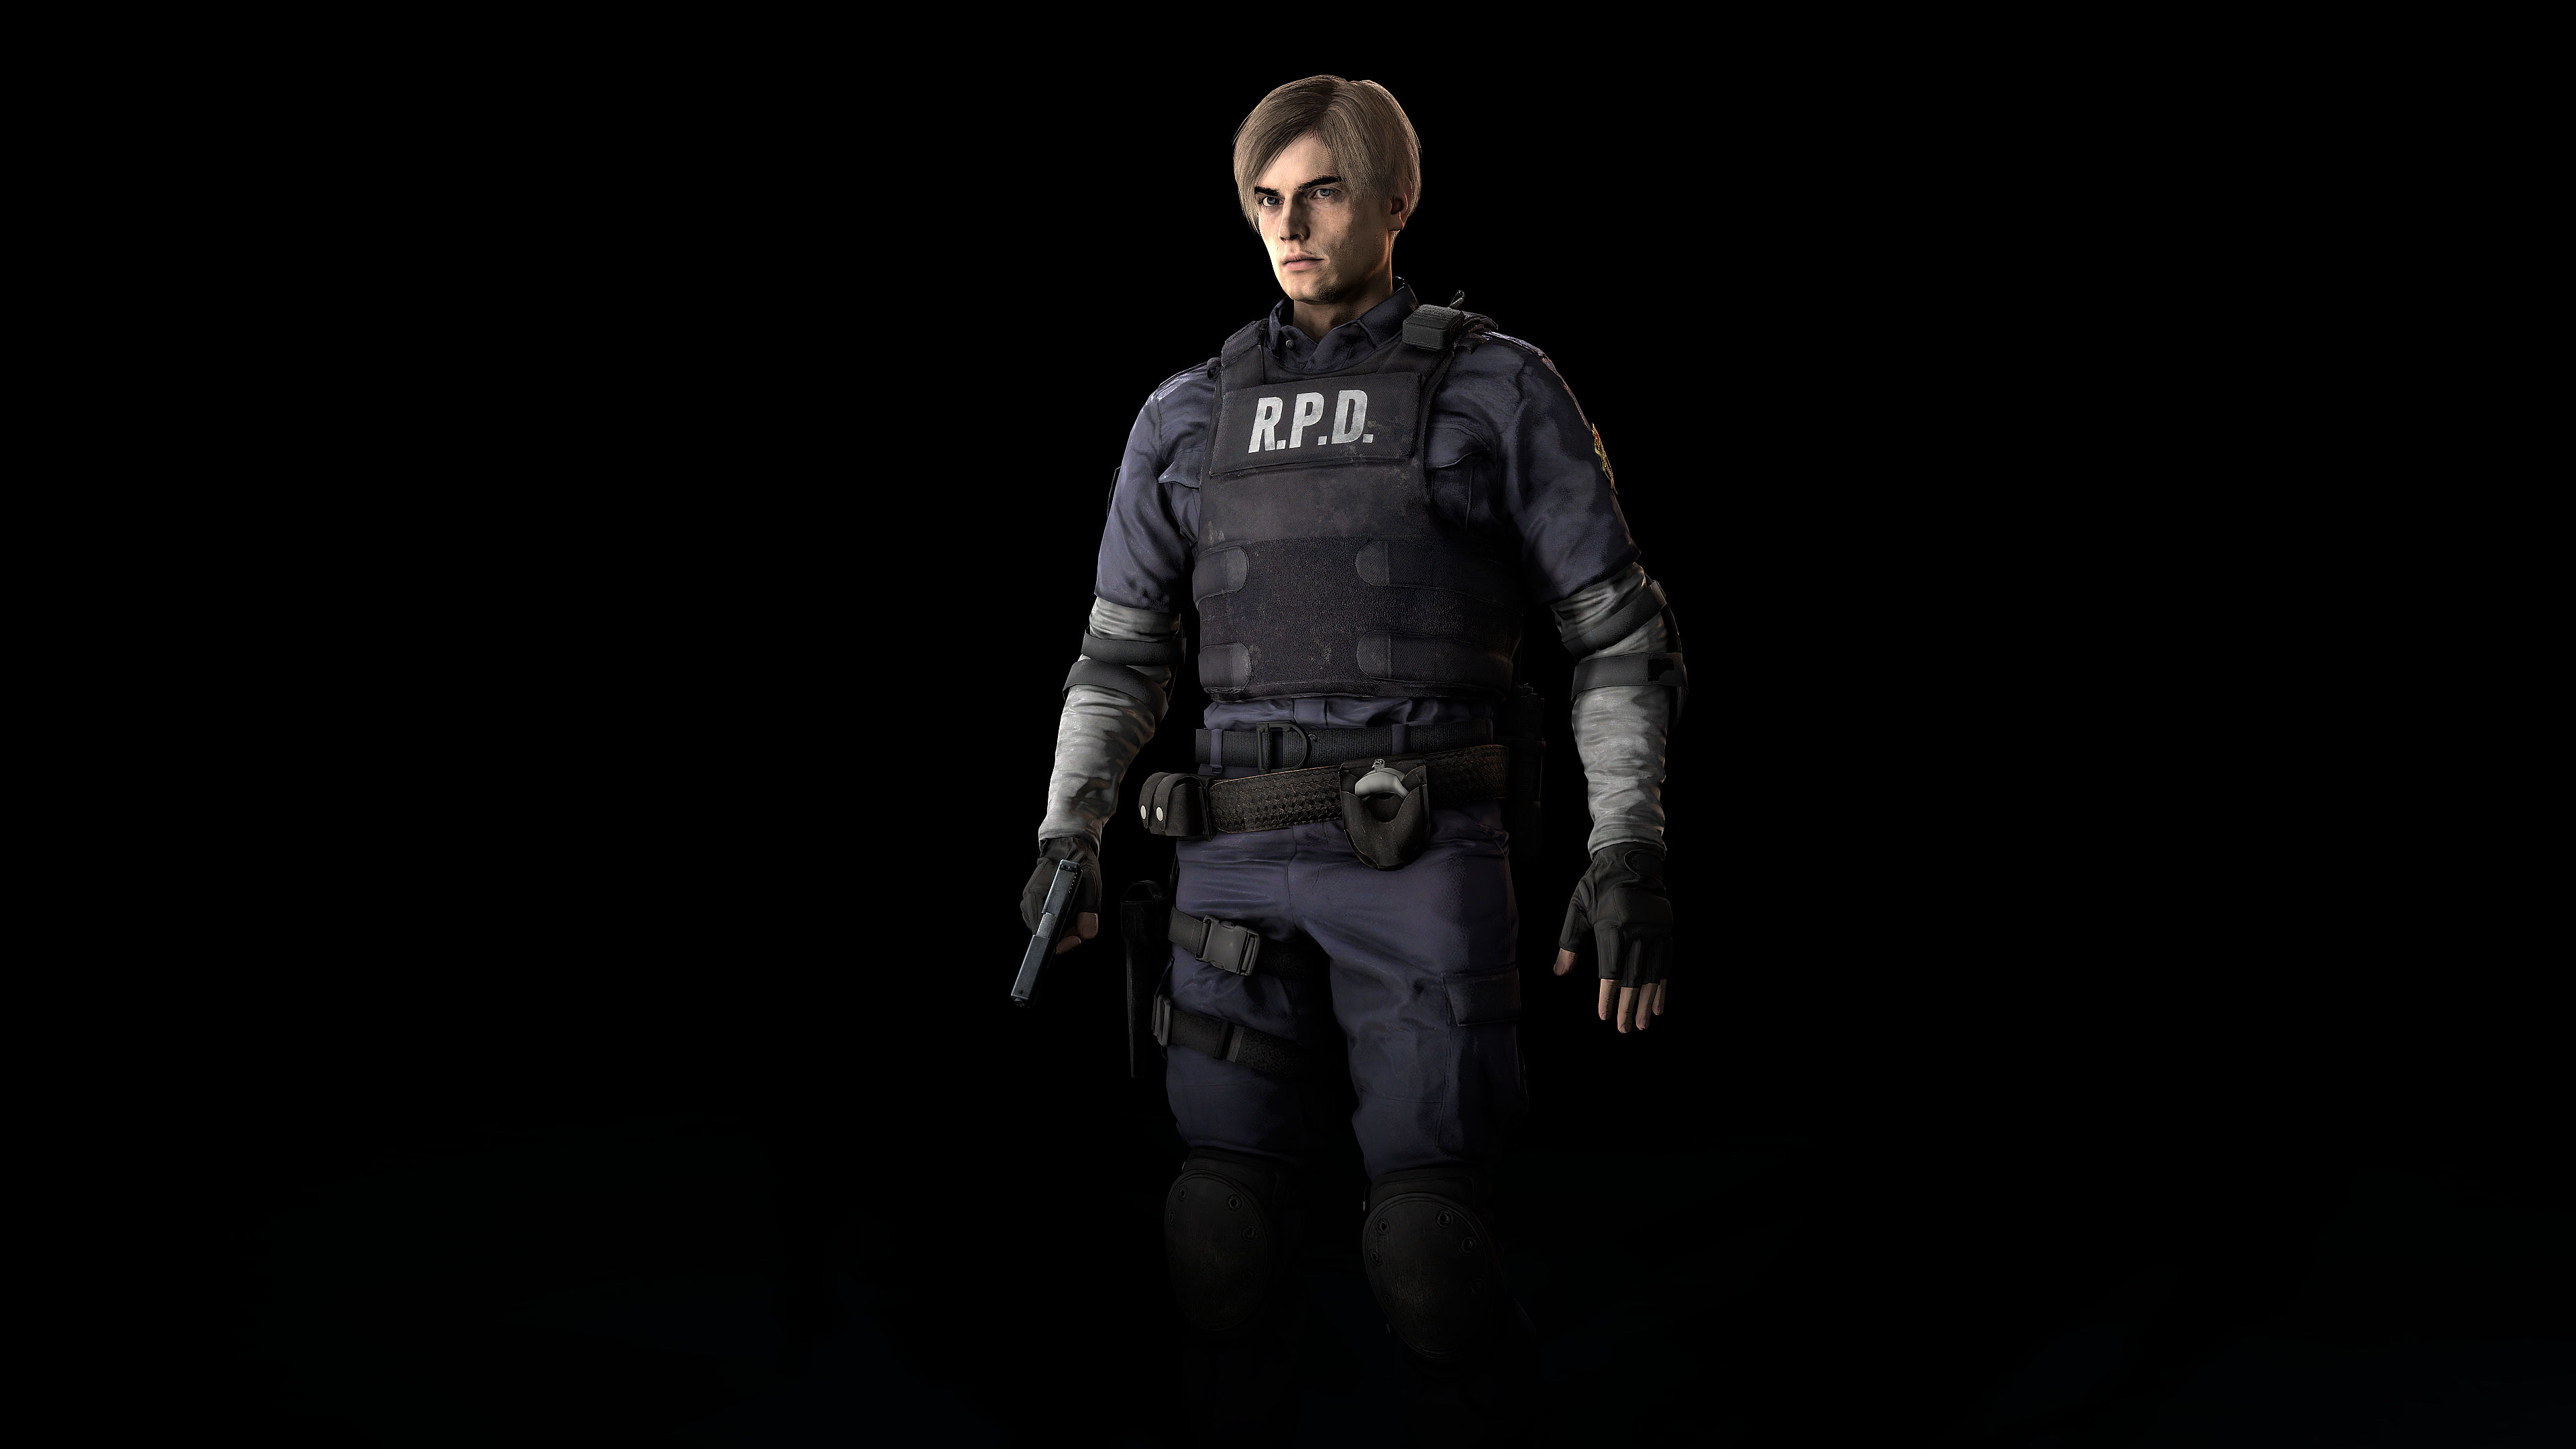 Steam Workshop Resident Evil 2 Leon S Kennedy